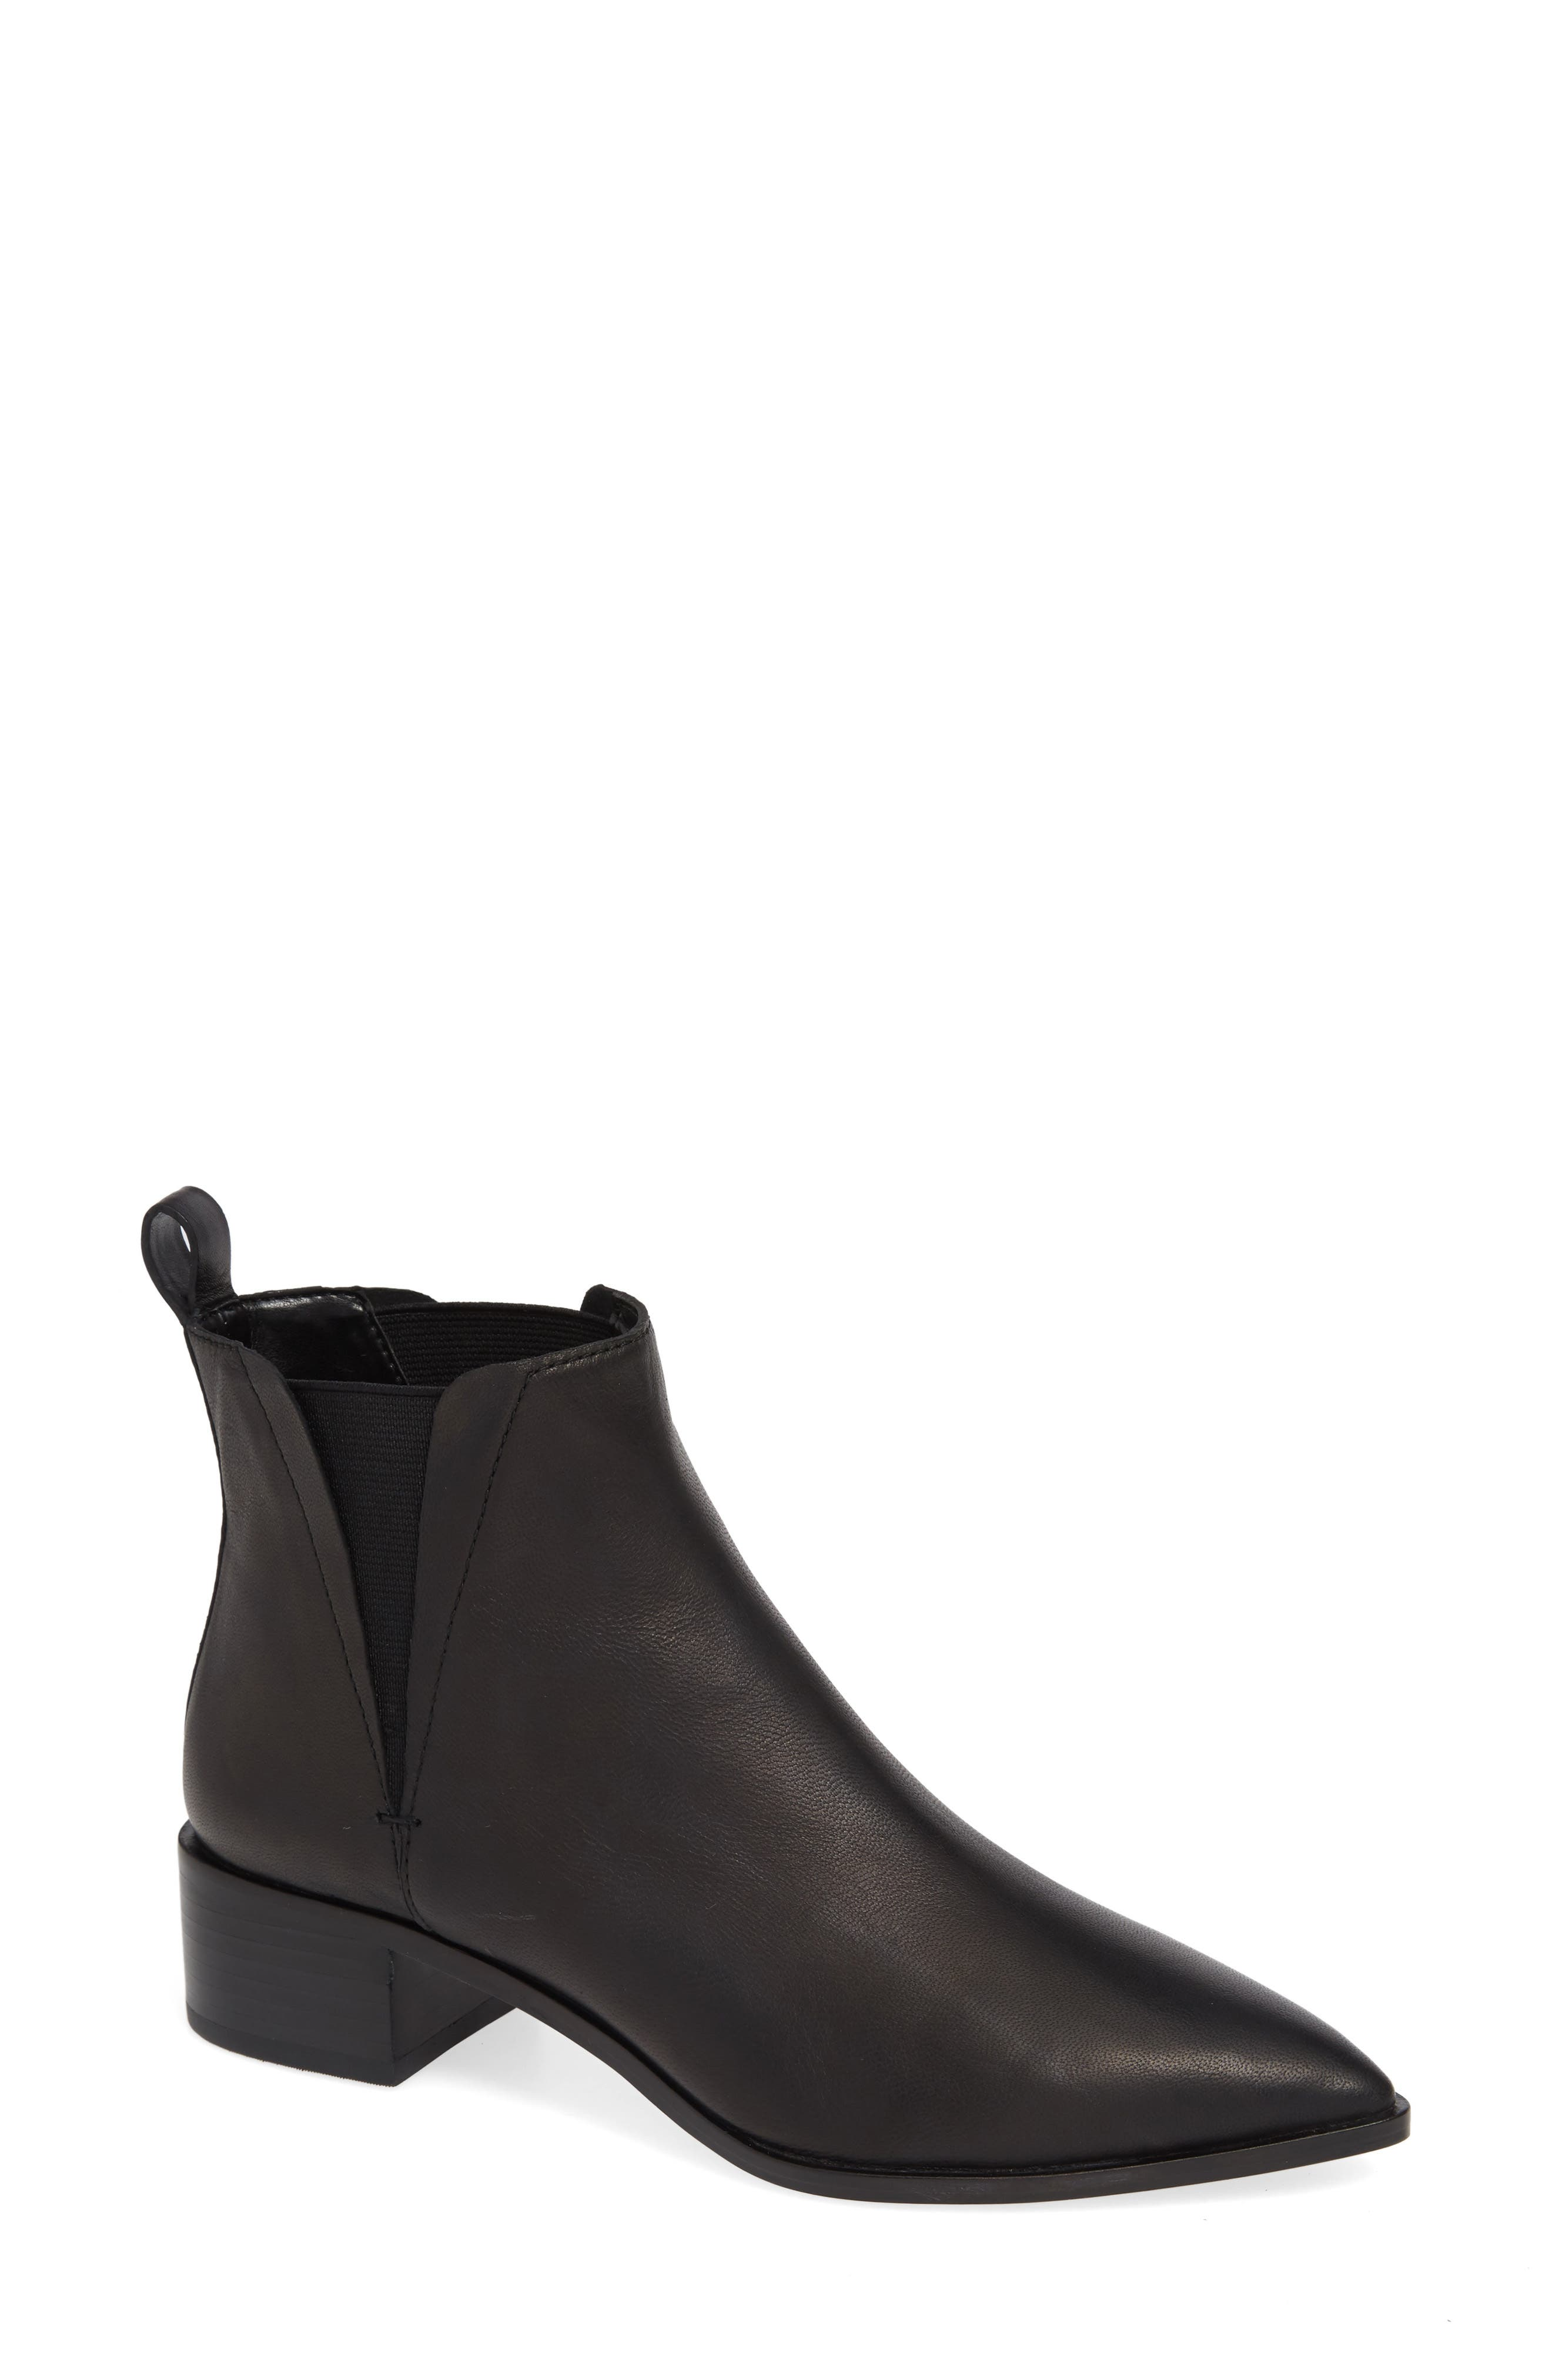 Taylor Bootie,                         Main,                         color, BLACK LEATHER